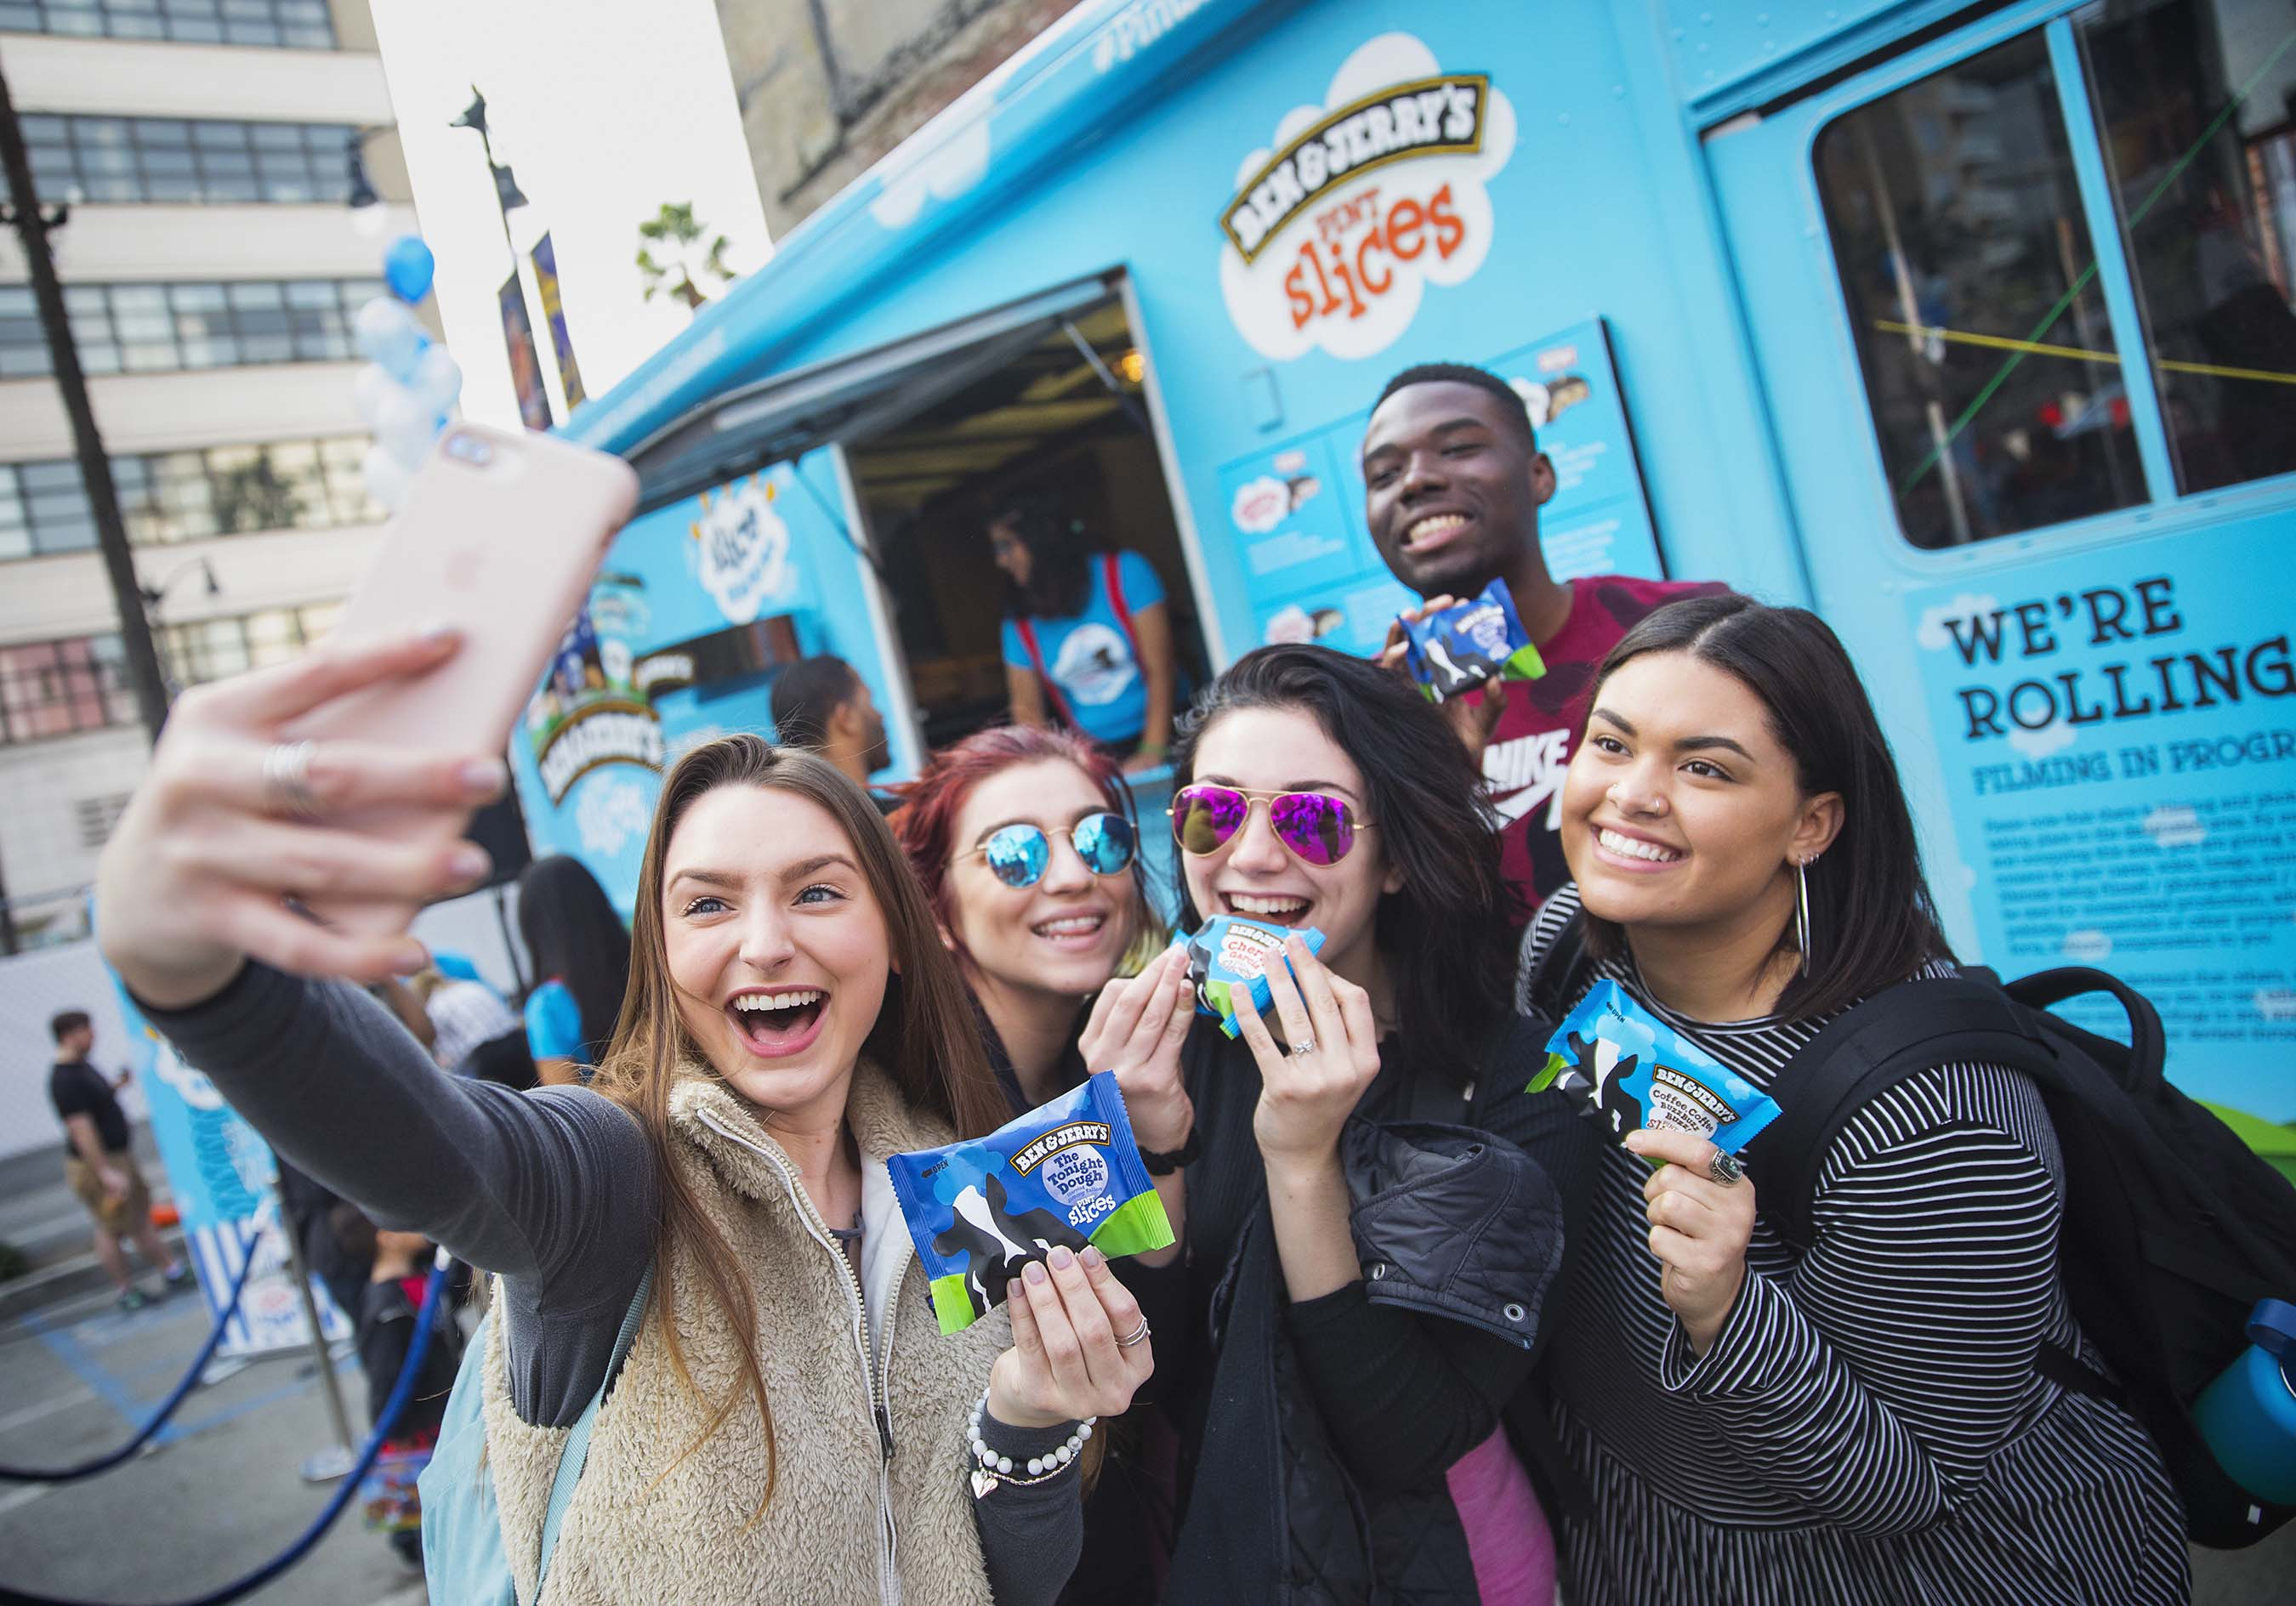 Fans celebrate the introduction of three new pint slice flavors at a pop-up pint slice carnival in Hollywood.